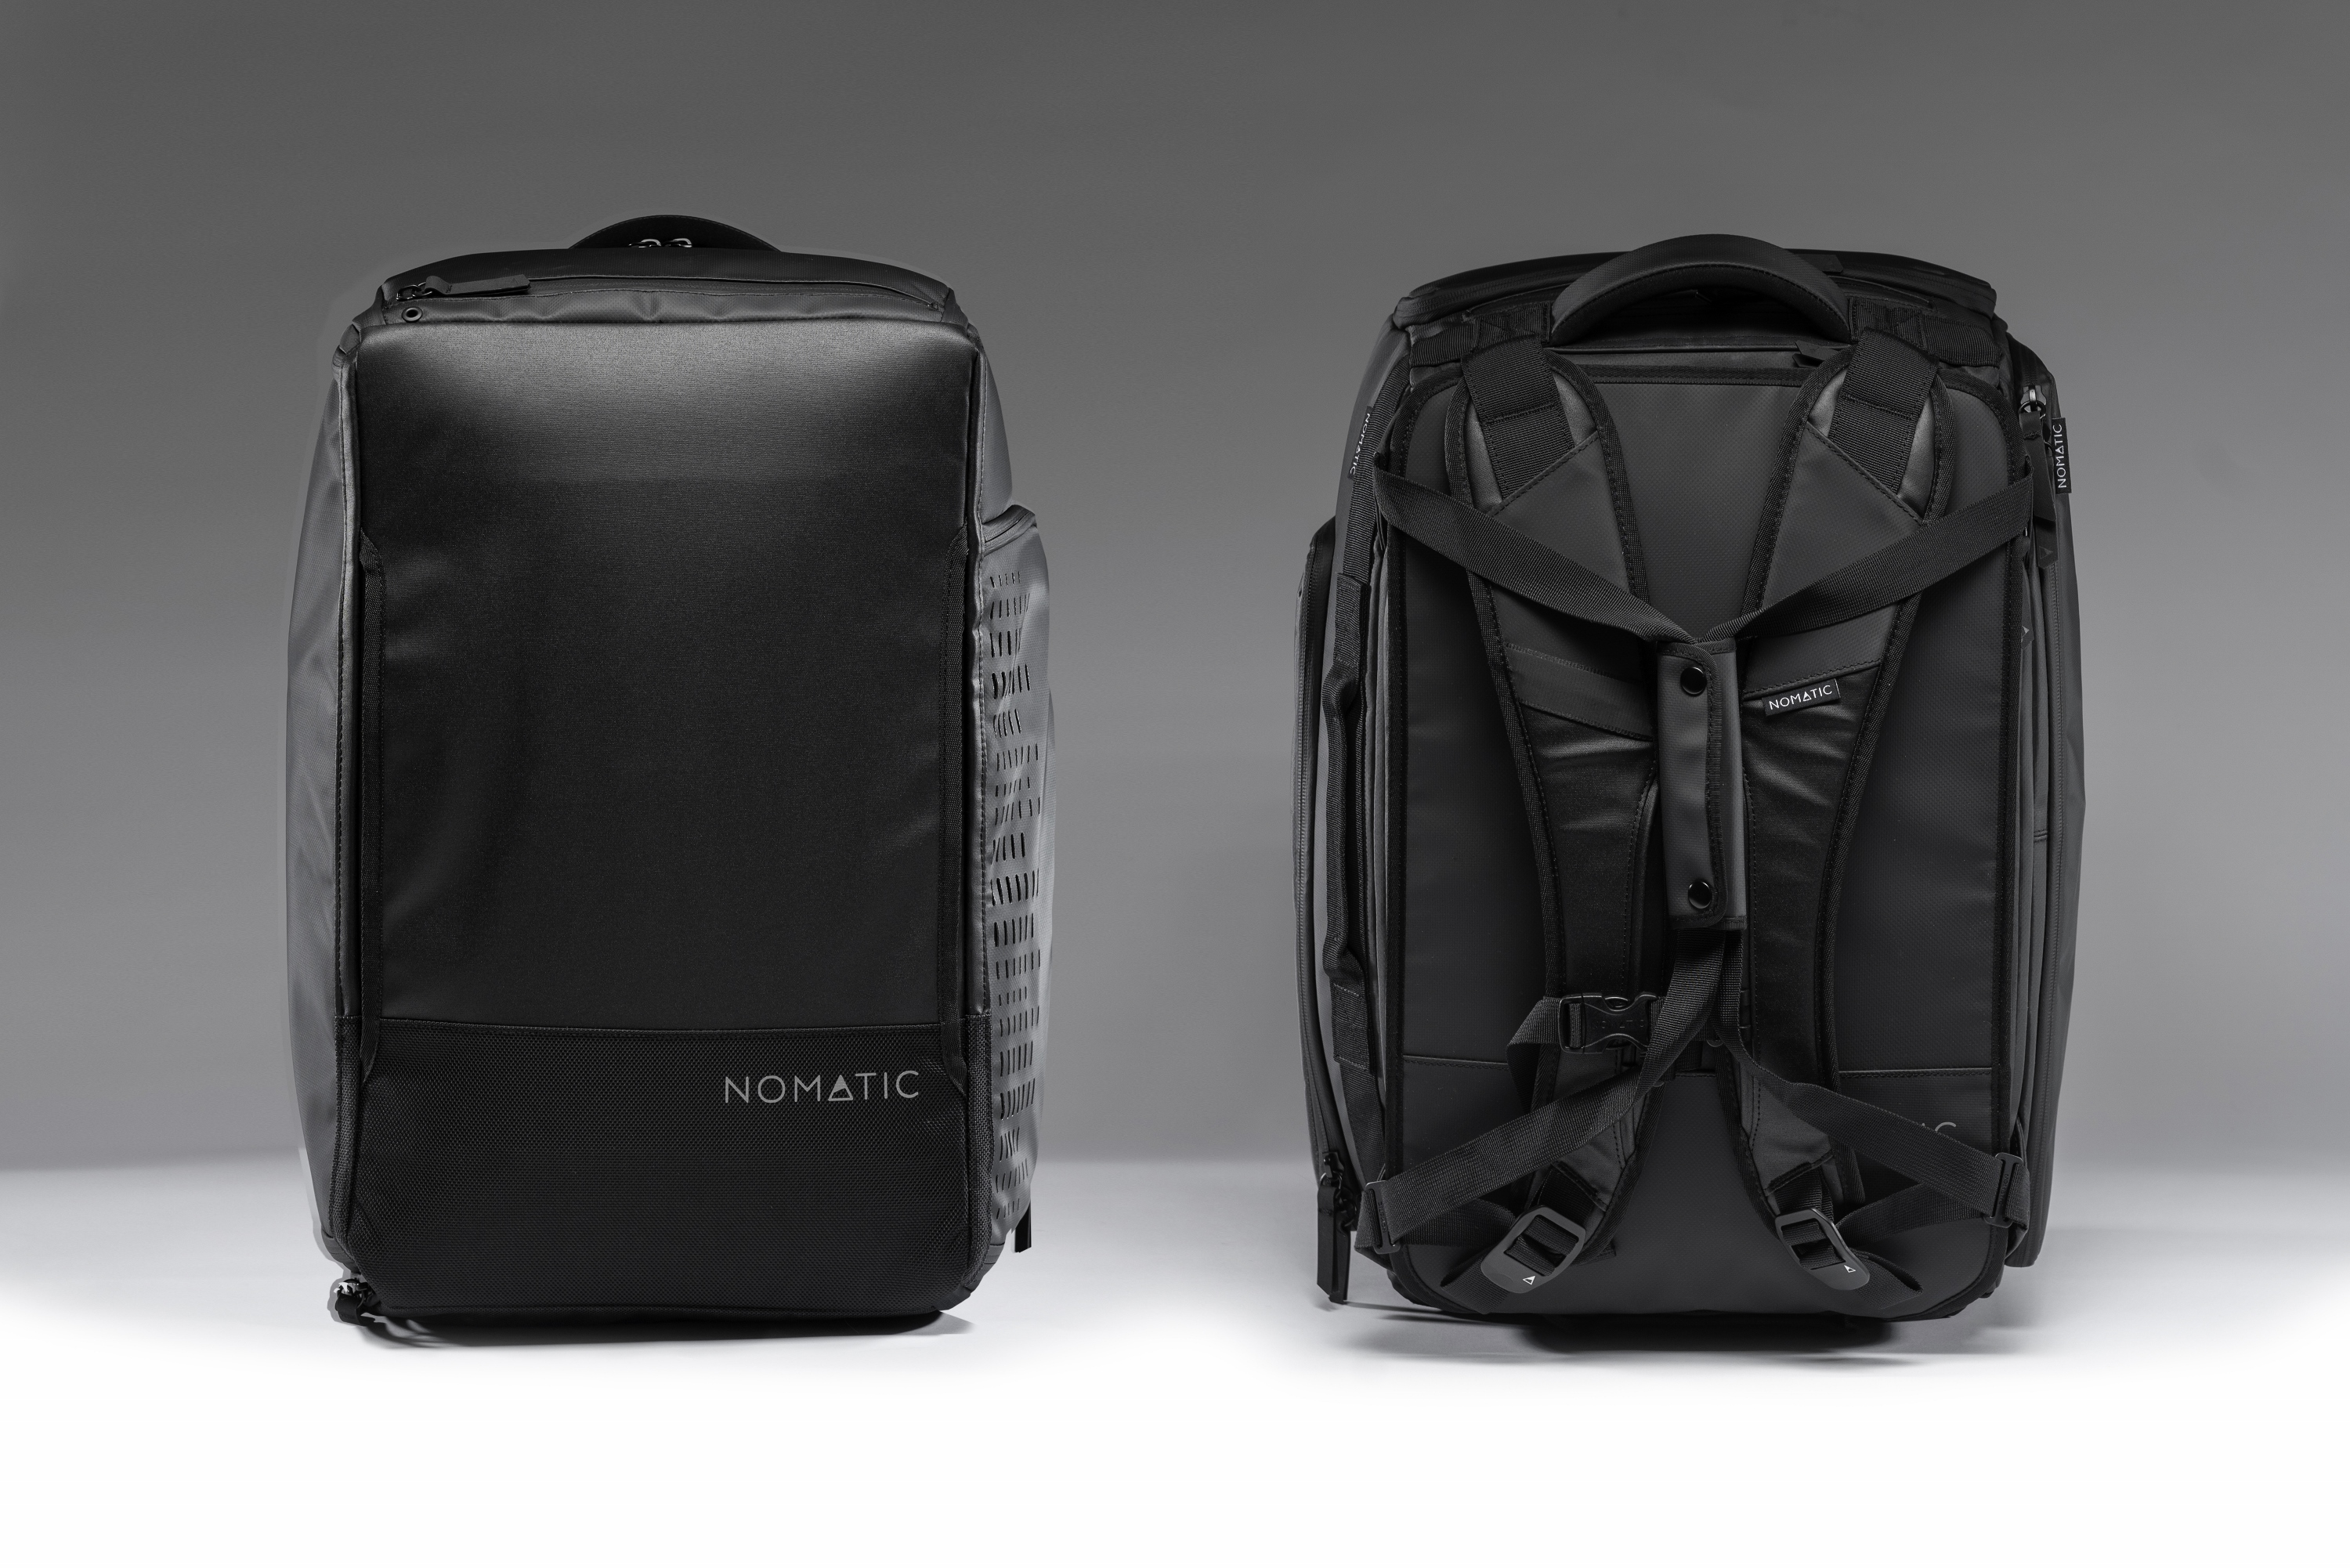 e885d0317 NOMATIC Introduces the Go Anywhere, Do Anything 30 Liter Travel Bag ...